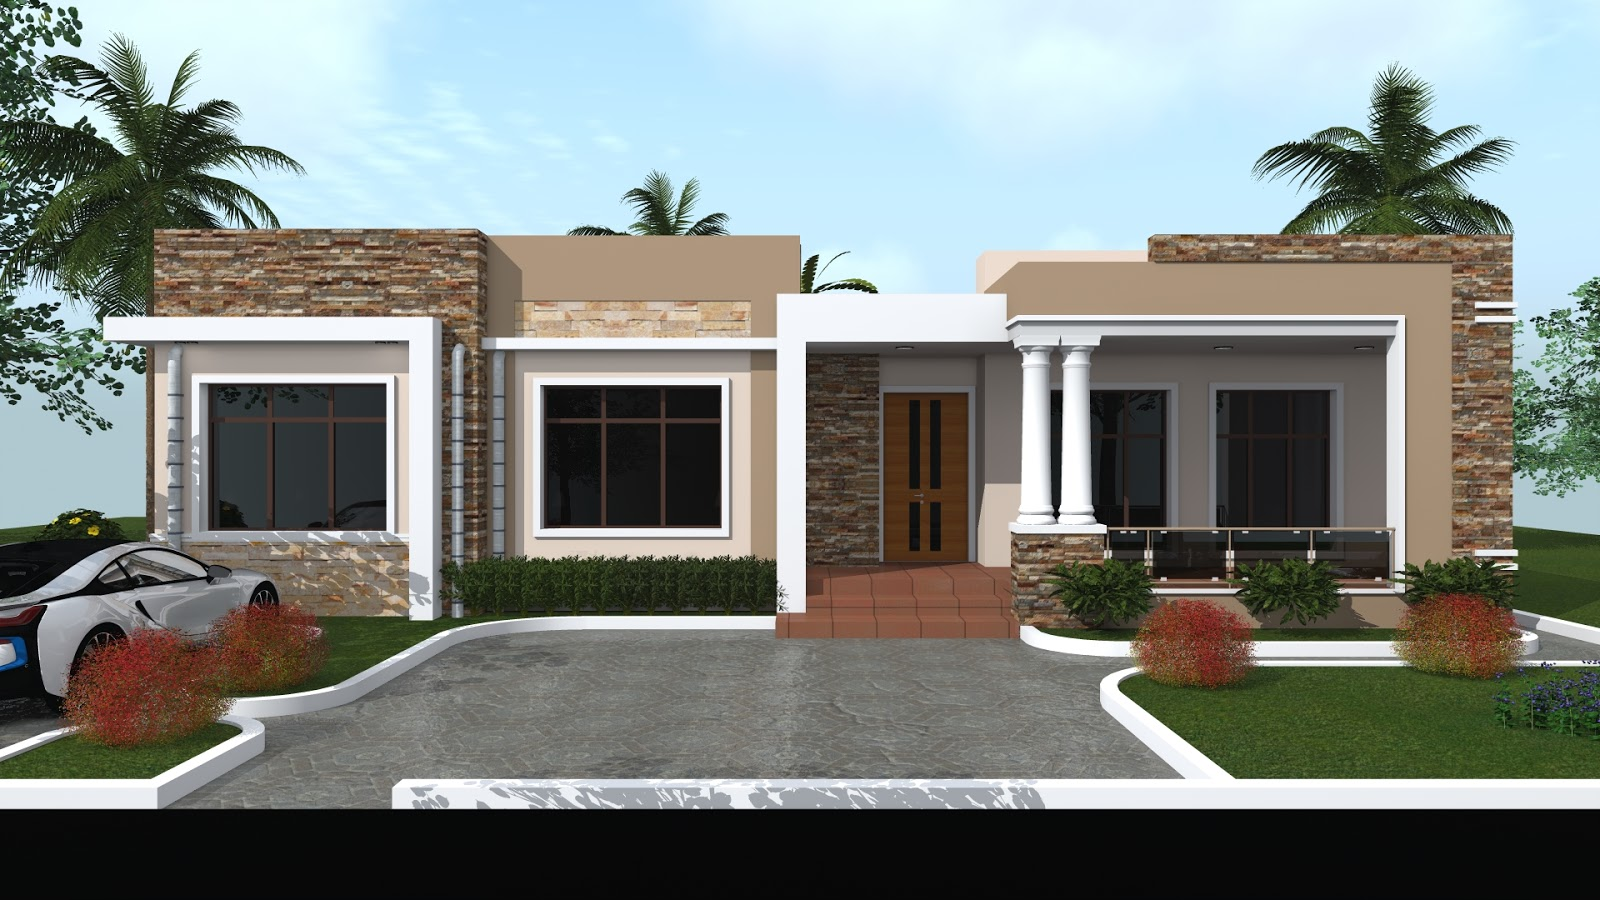 3 Bedroom S House Plan Flat Roofing Id Ma 92